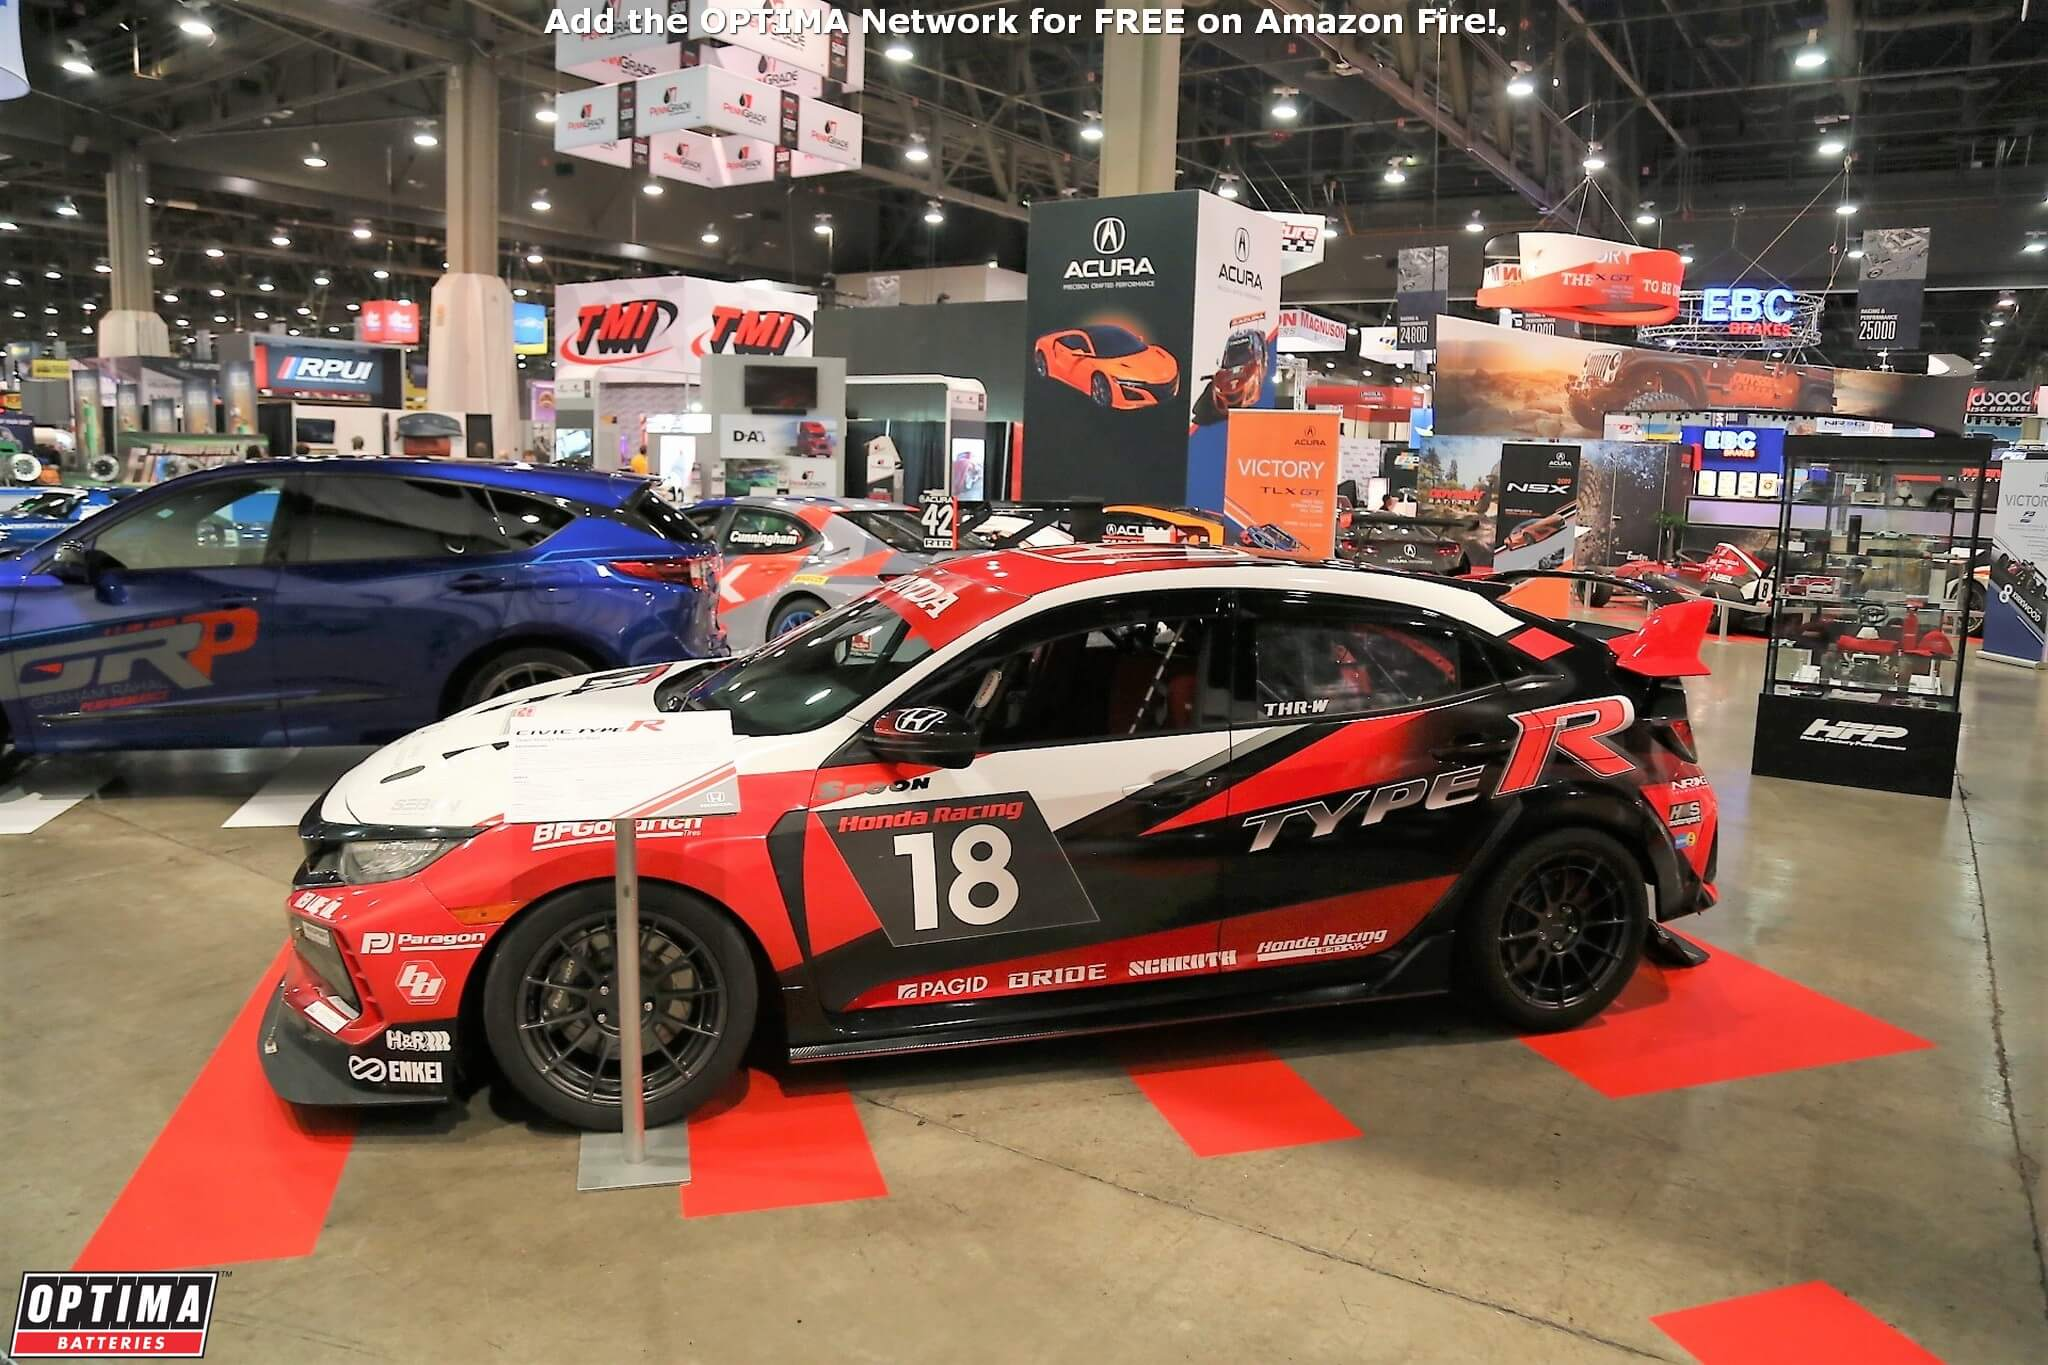 Honda-Civic-Type-R-SEMA-Show-2018-Wednesday_553